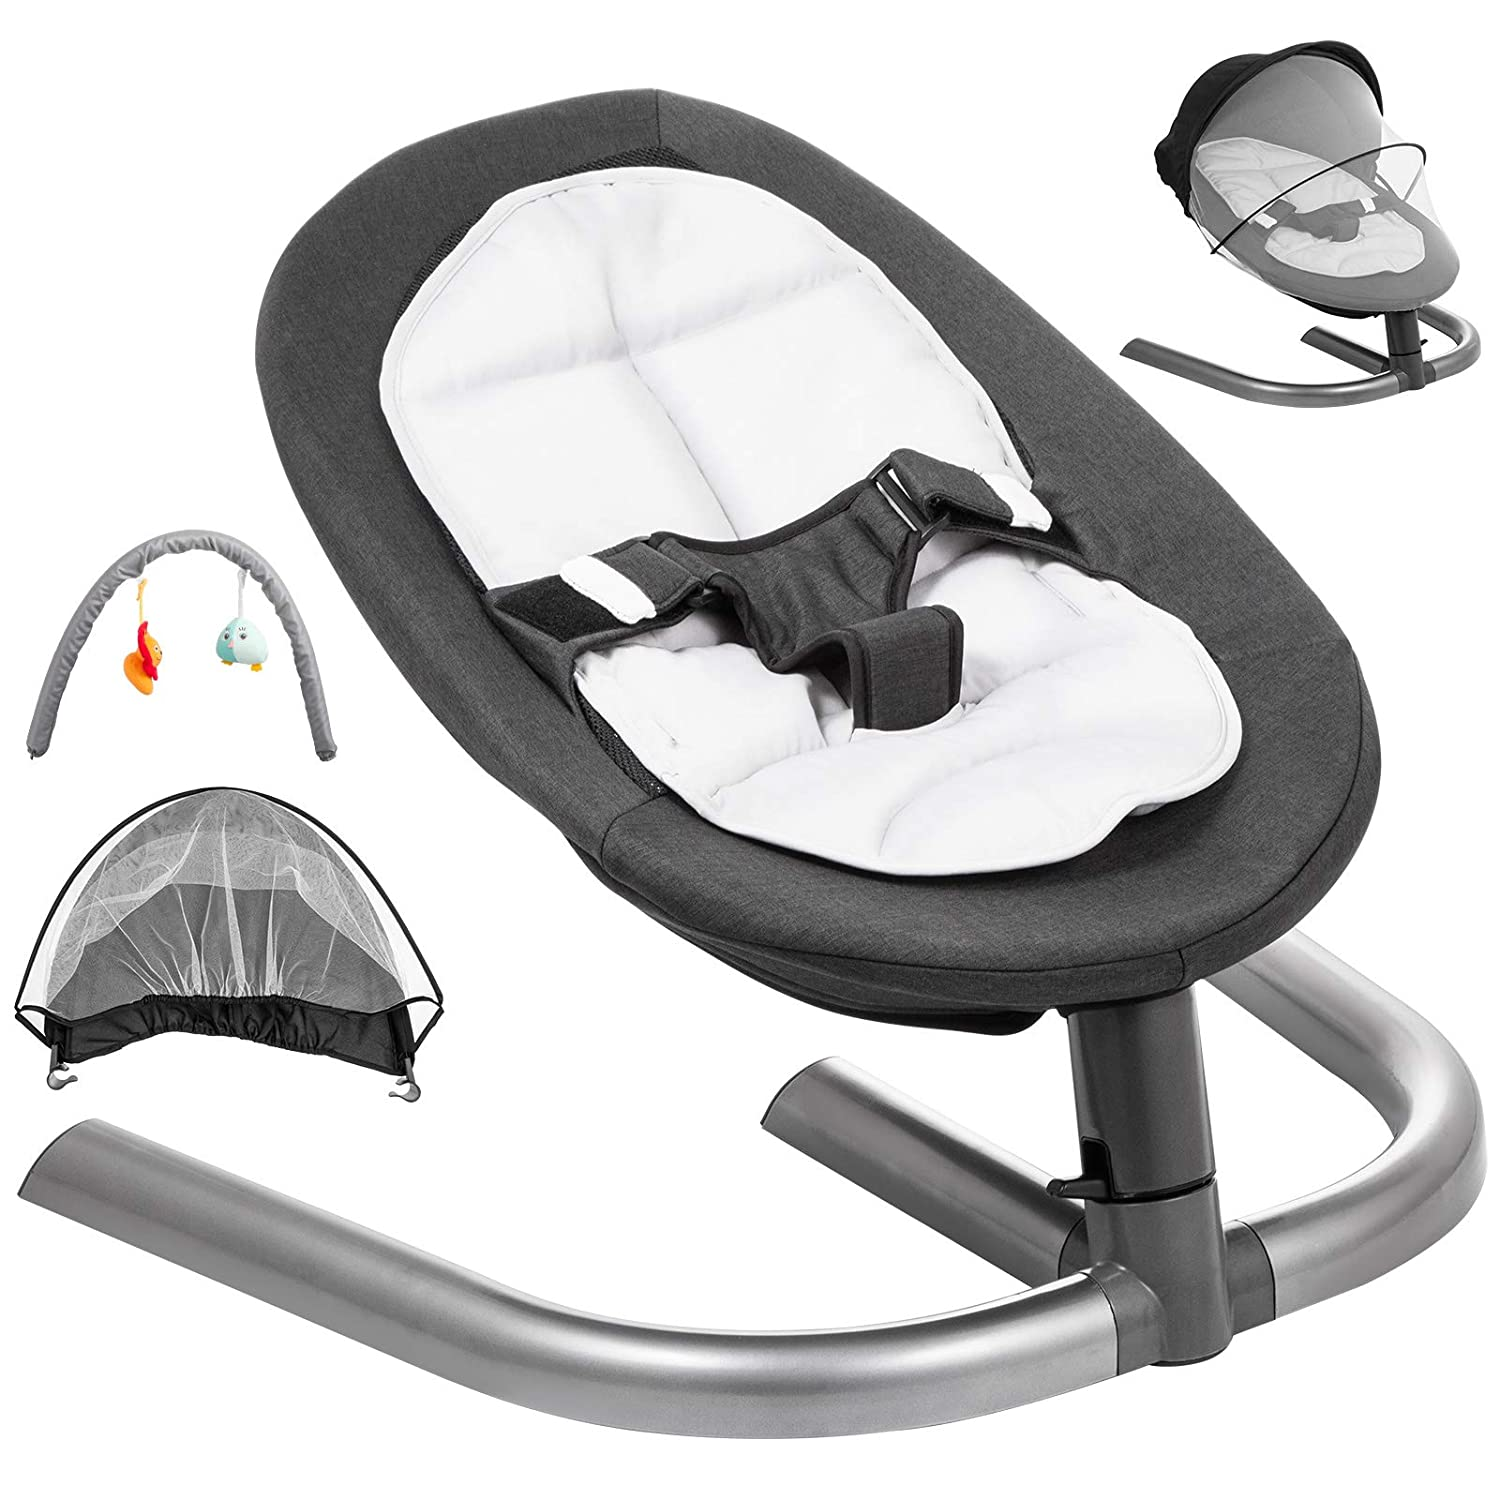 Gray Happybuy Baby Swing Chair for Newborn Toddler Kids from Ages 0 to 5 Bouncer Infant Comfort Swing Chair Soft Toddler Cradle Seat Baby Rocker Plush Rocking